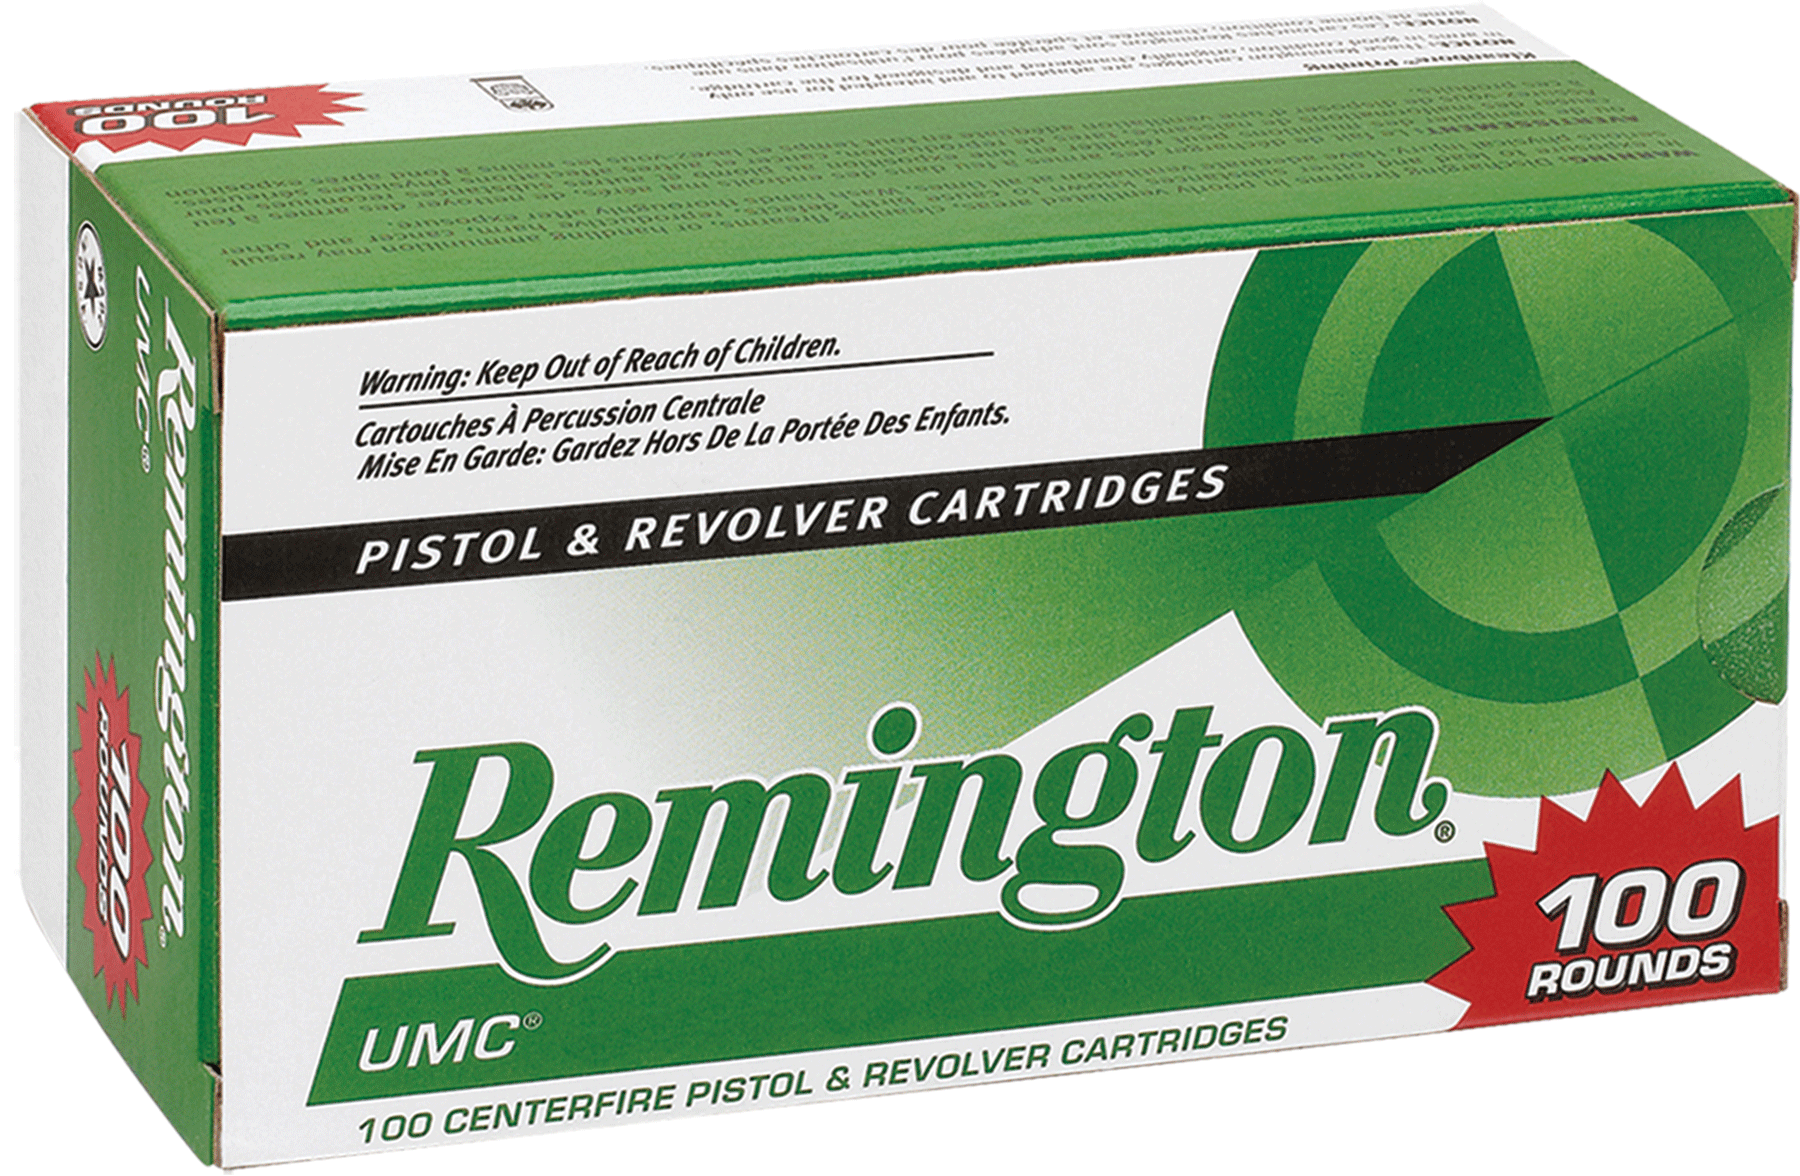 Remington UMC Ammunition 357 Magnum 125GR Semi-Jacketed Hollow Point Per 100